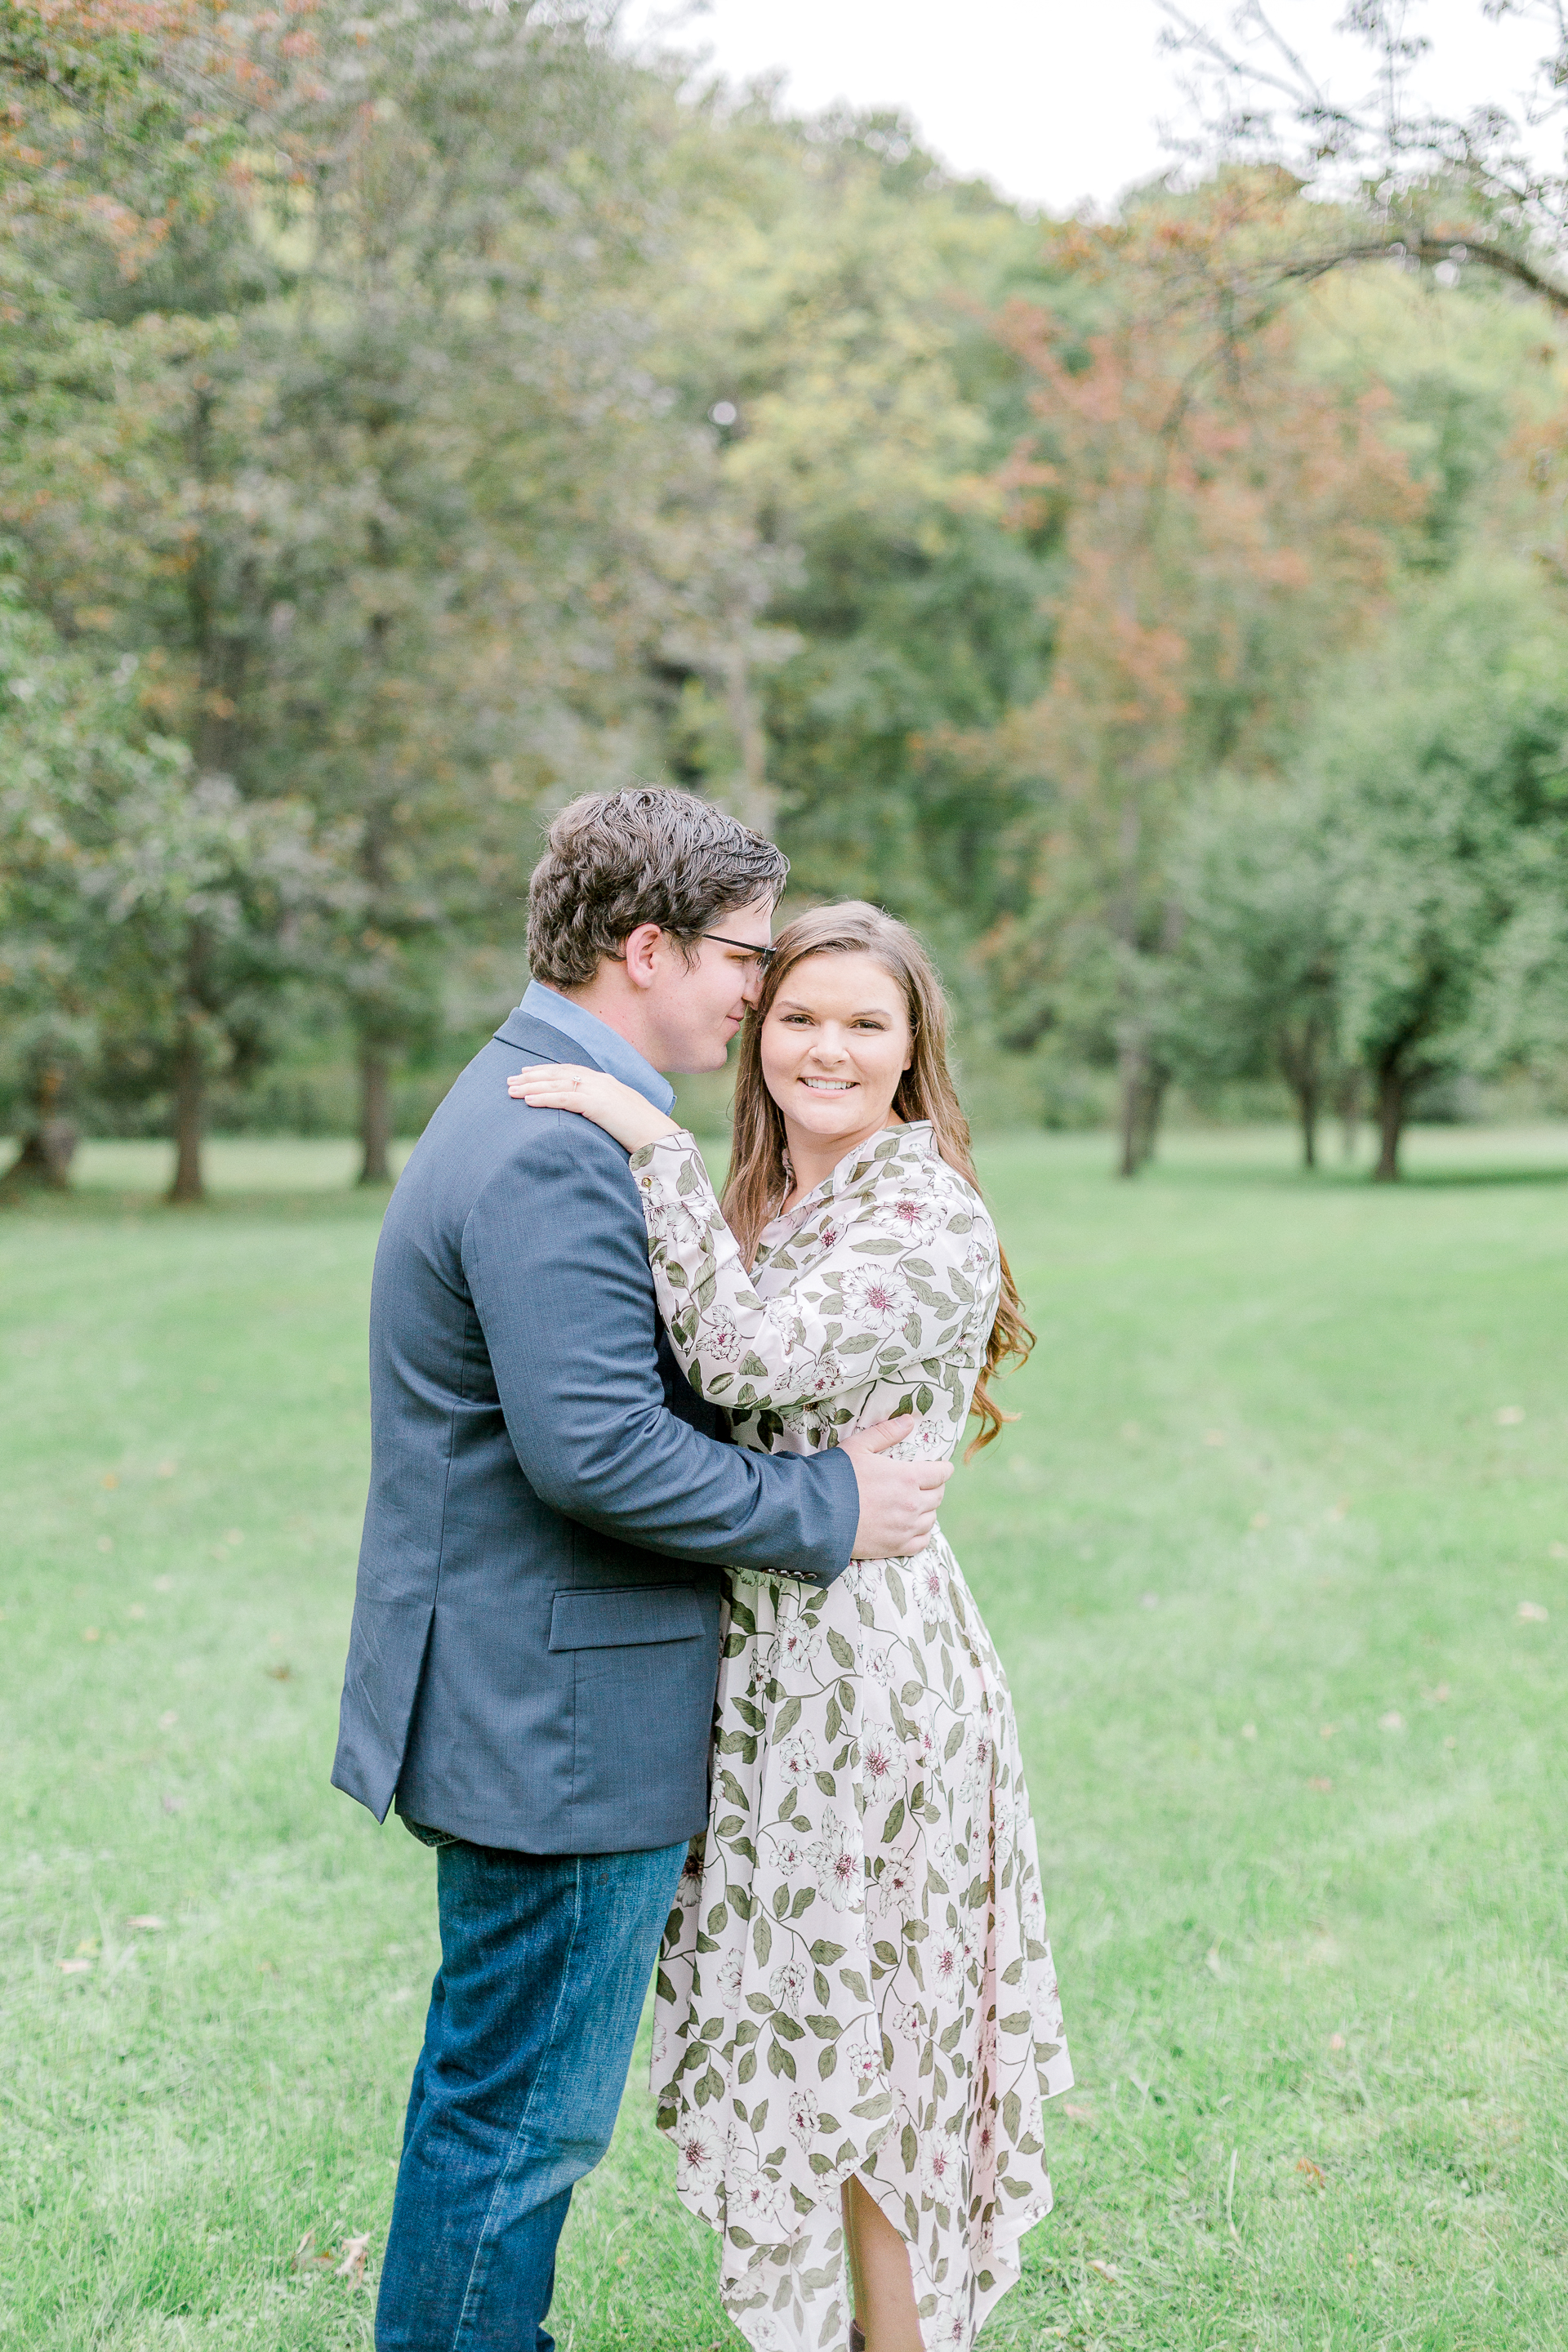 Lehigh valley Fish hatchery fall Engagement Session wedding and lifestyle photographer Lytle Photo Co (1 of 69).jpg